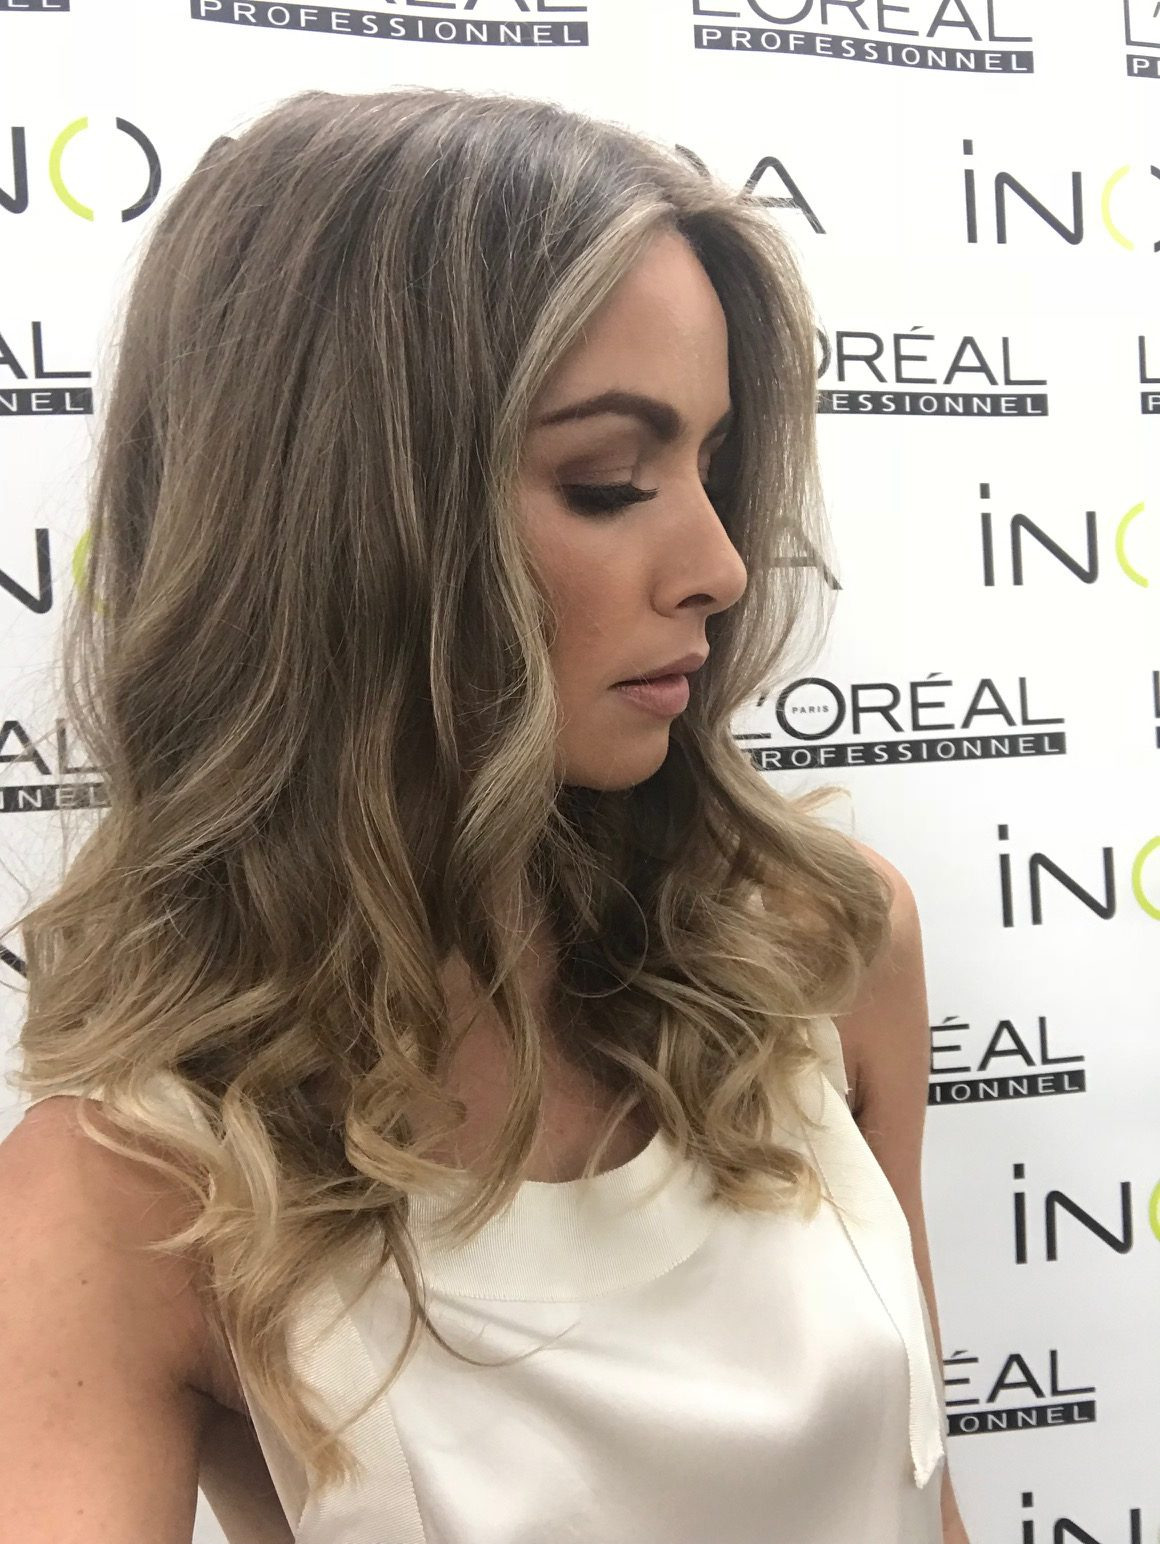 Blonde Collection 2018 for Maurice Meade - Perth beauty blogger Katie Rebekah